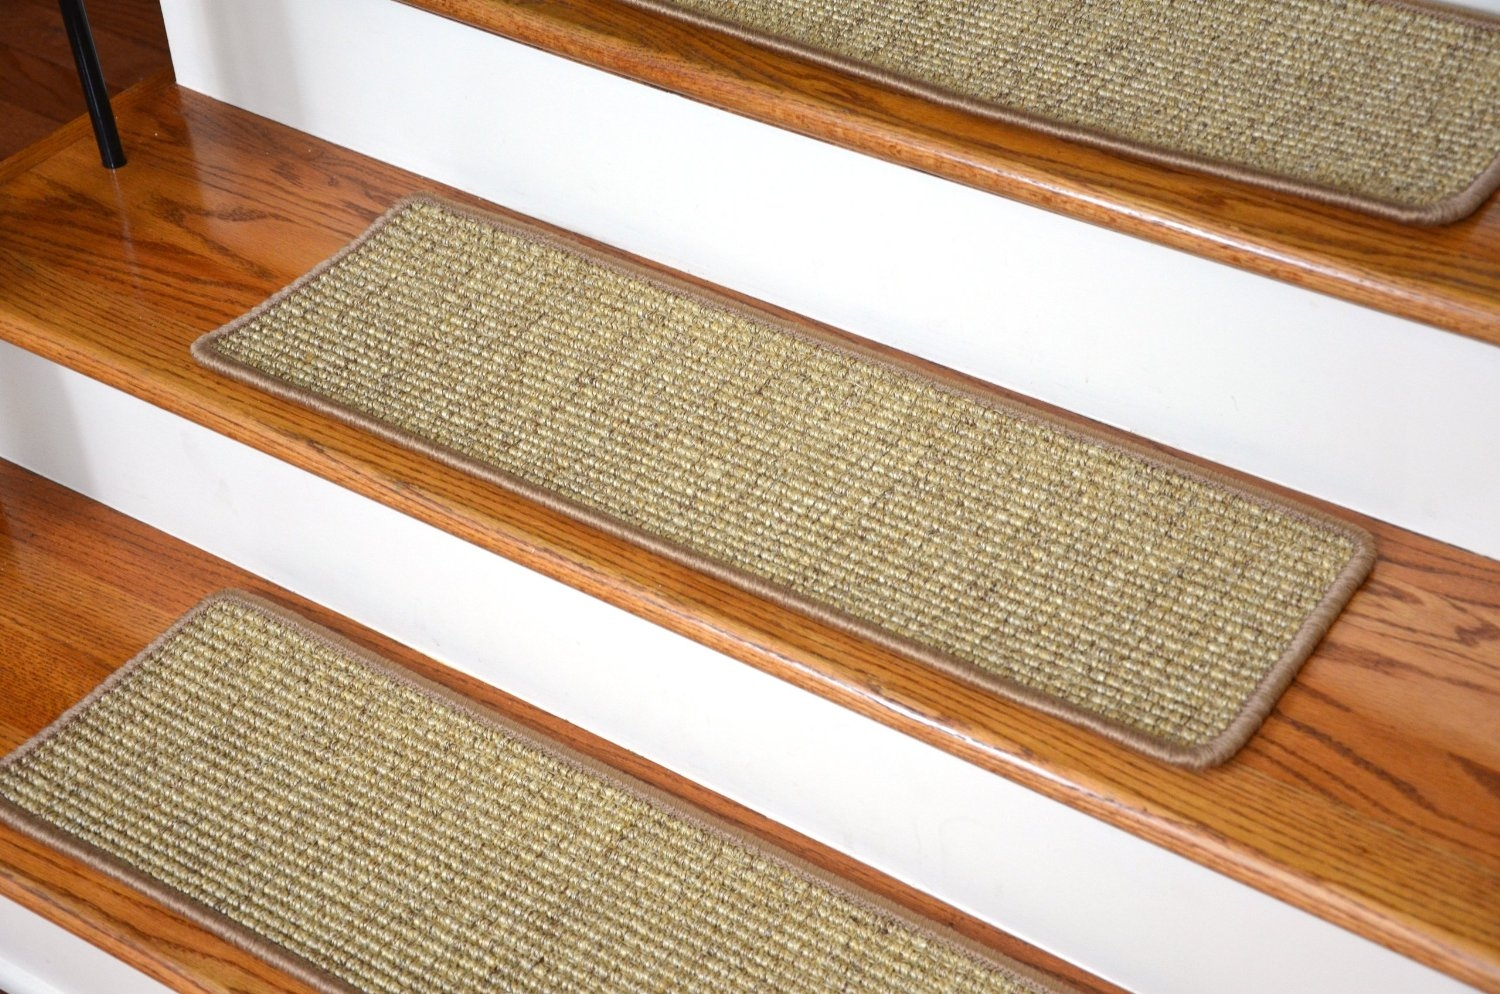 Flooring Pretty Stair Treads Carpet For Stair Decoration Idea Intended For Non Skid Stair Treads Carpet (#11 of 20)